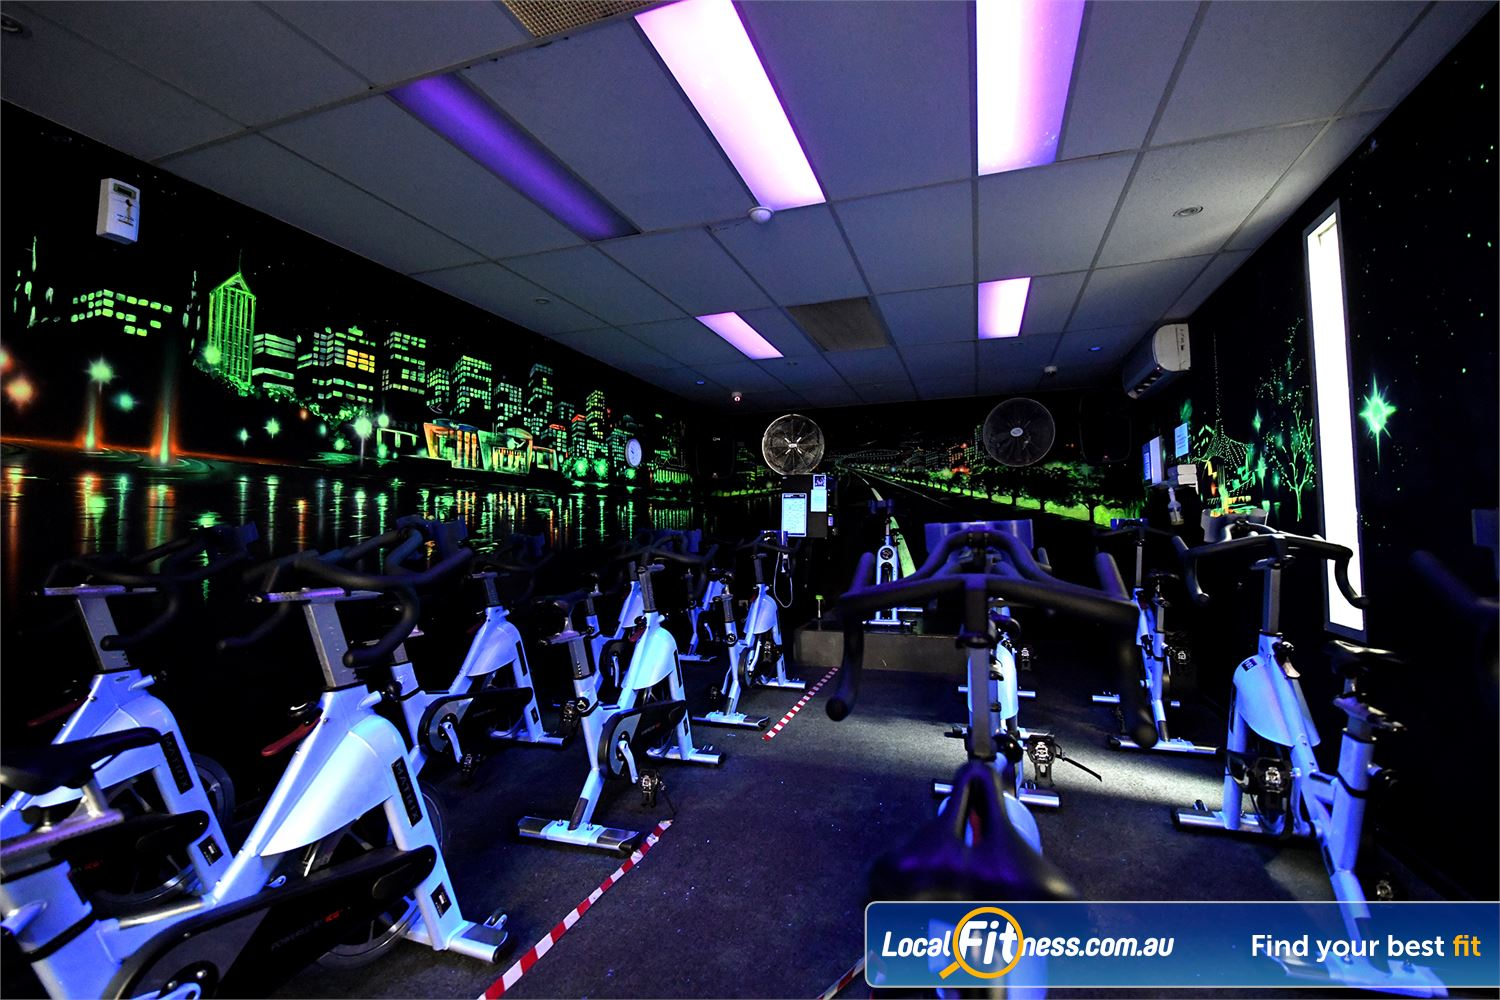 Goodlife Health Clubs Near Truganina Dedicated Hoppers Crossing spin cycle studio.